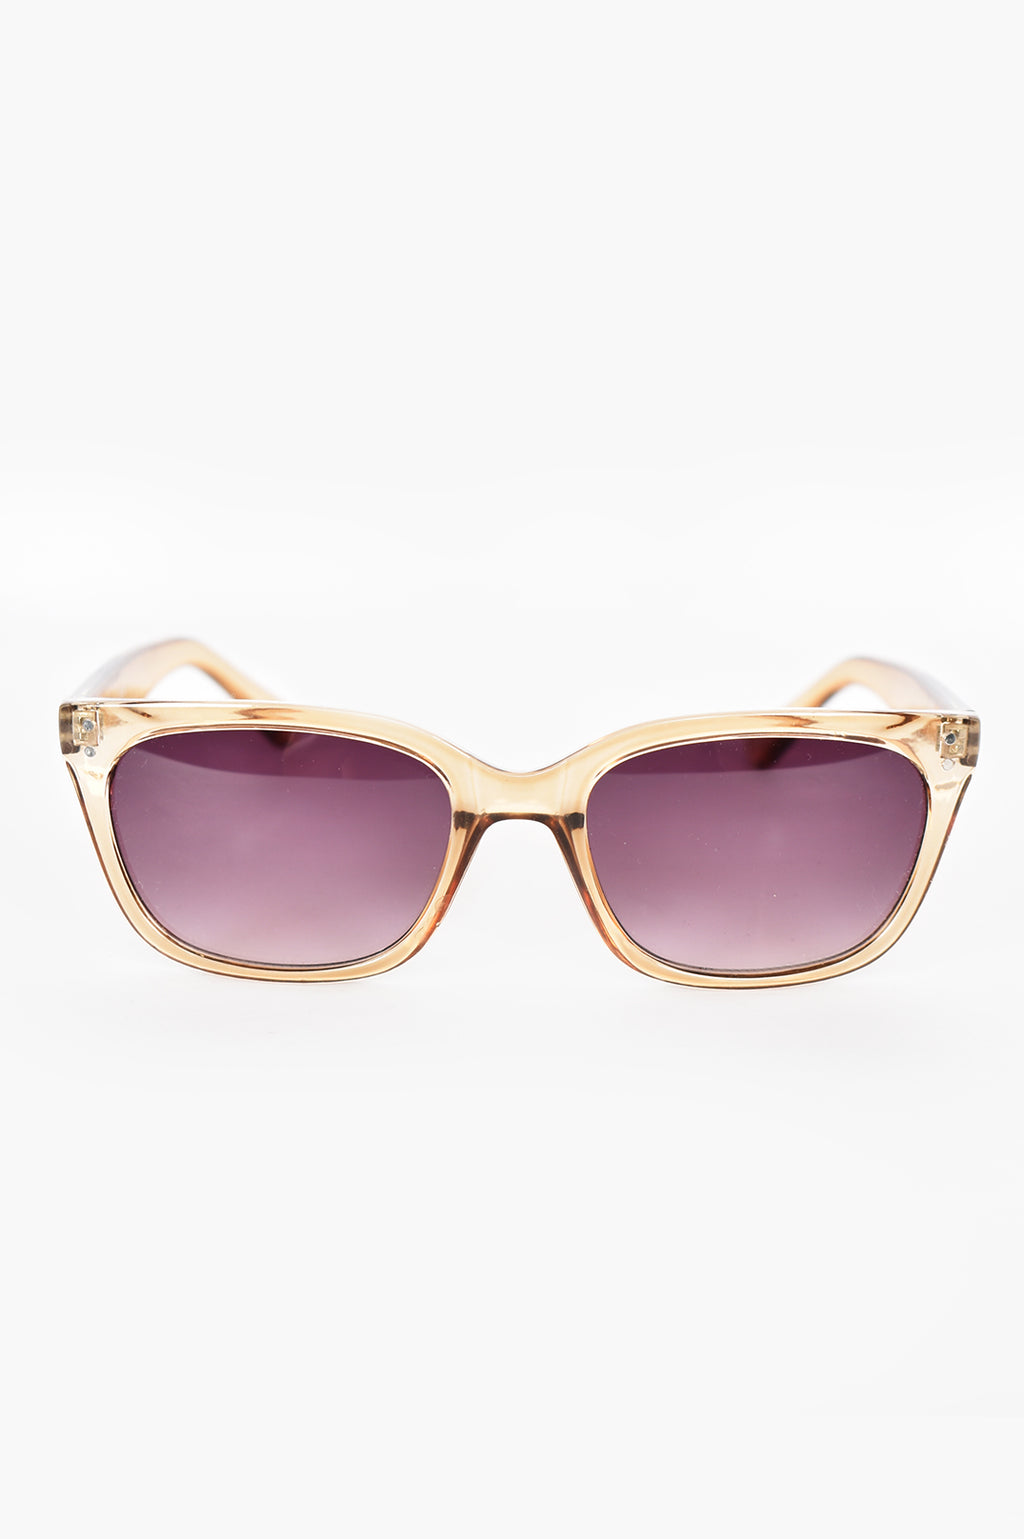 RUNNING AROUND TOWN (CAMEL) | SUNGLASSES